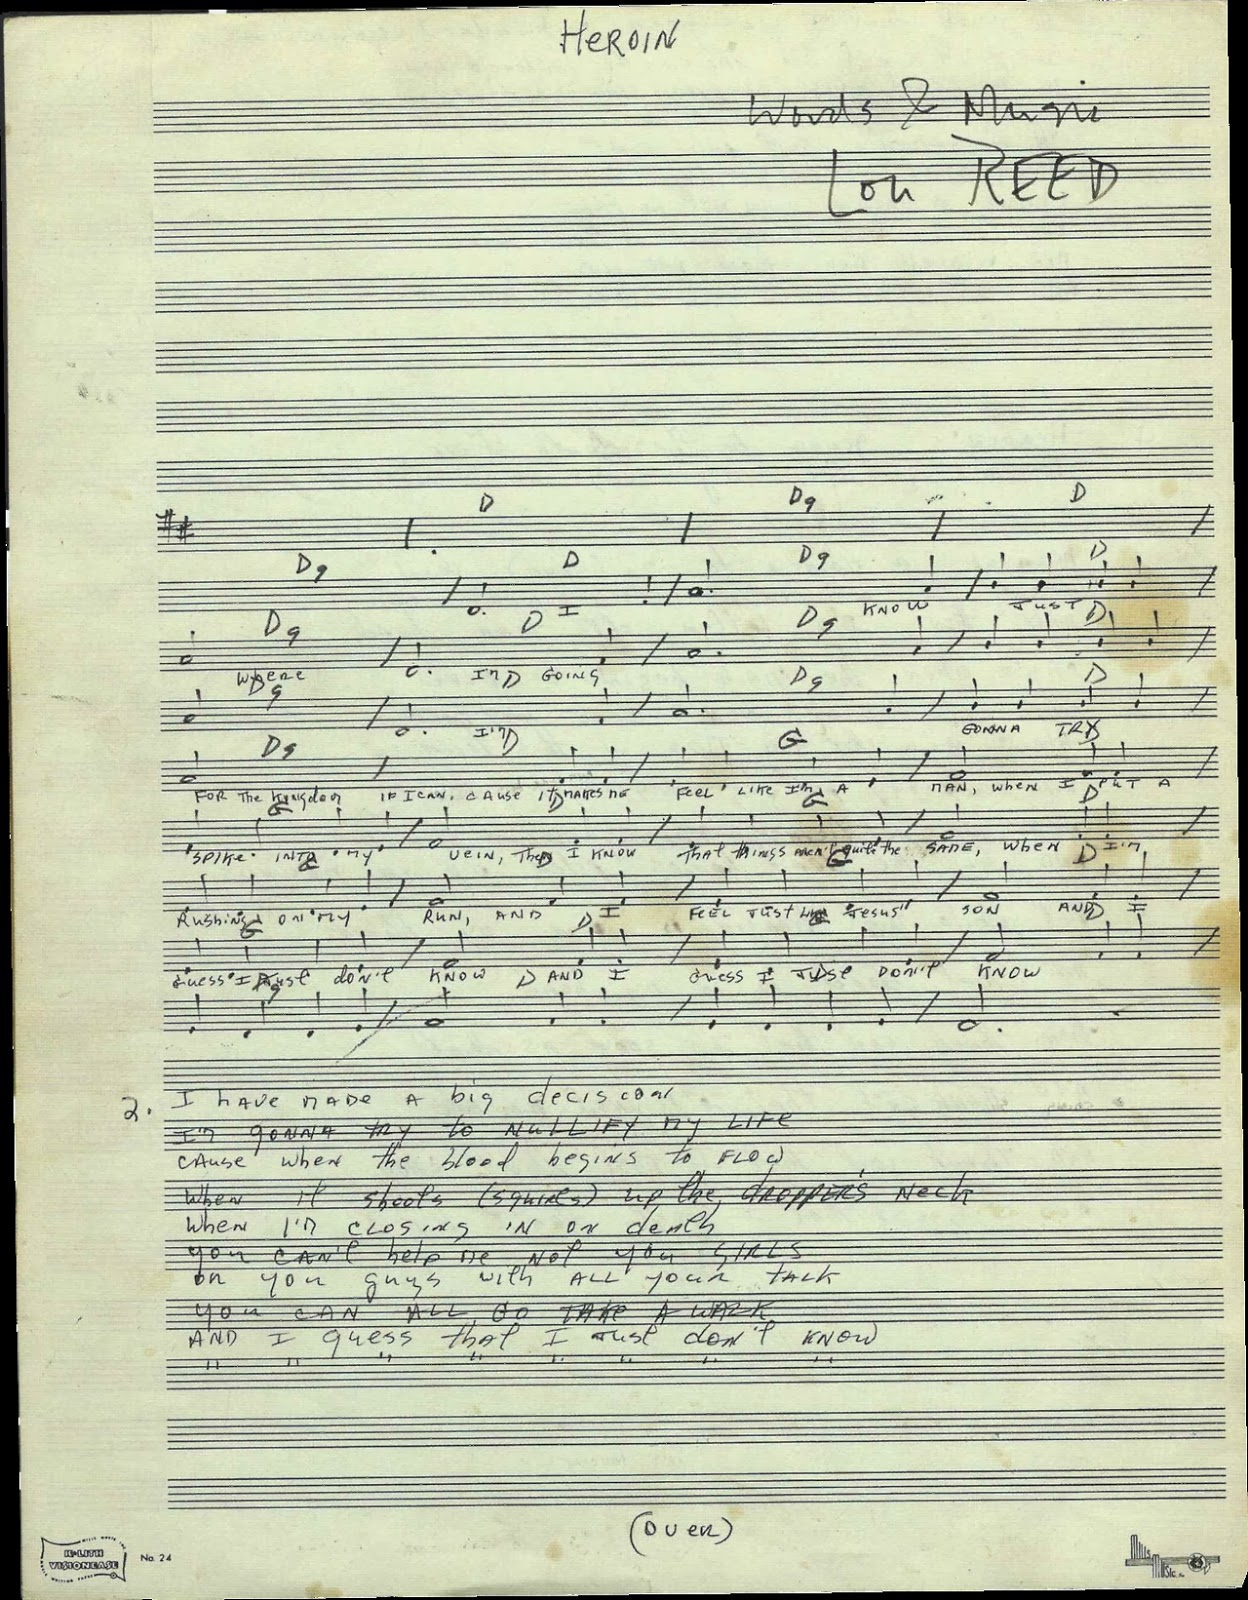 Lou reeds compositional manuscript with chords and lyrics to lou reeds compositional manuscript with chords and lyrics to heroin vintage everyday hexwebz Image collections